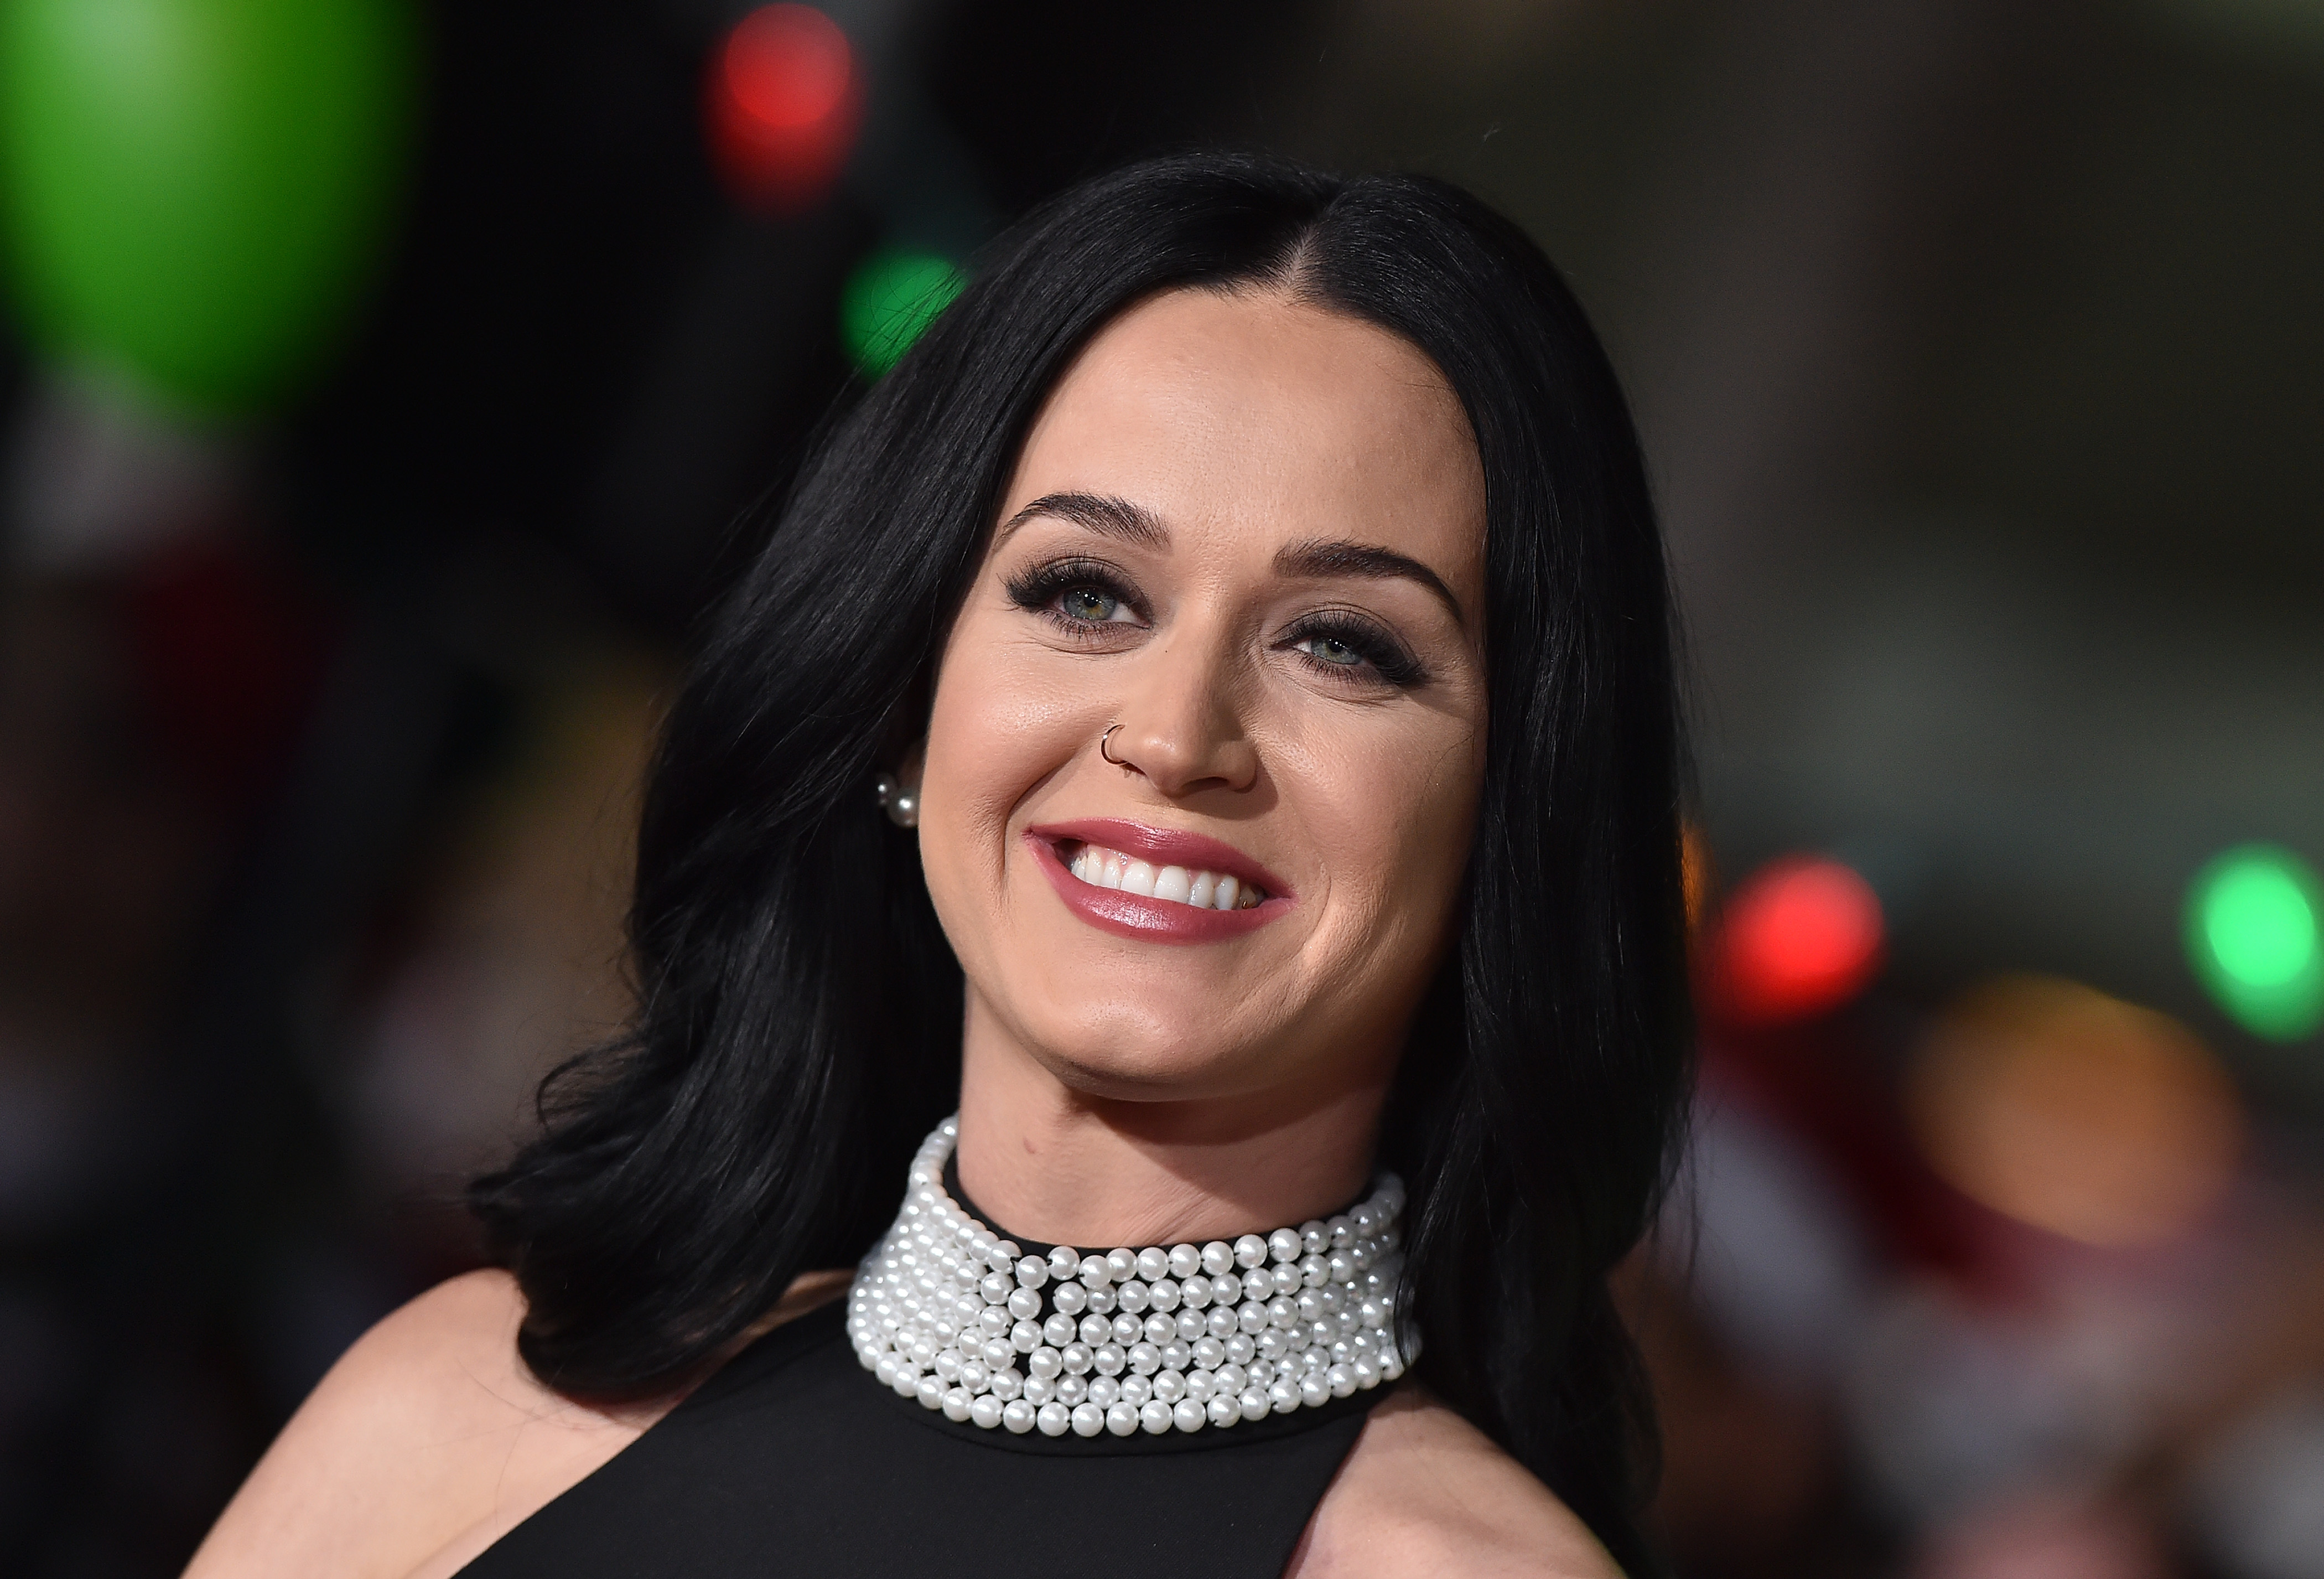 Katy Perry wants to play one giant game of hide and seek with you